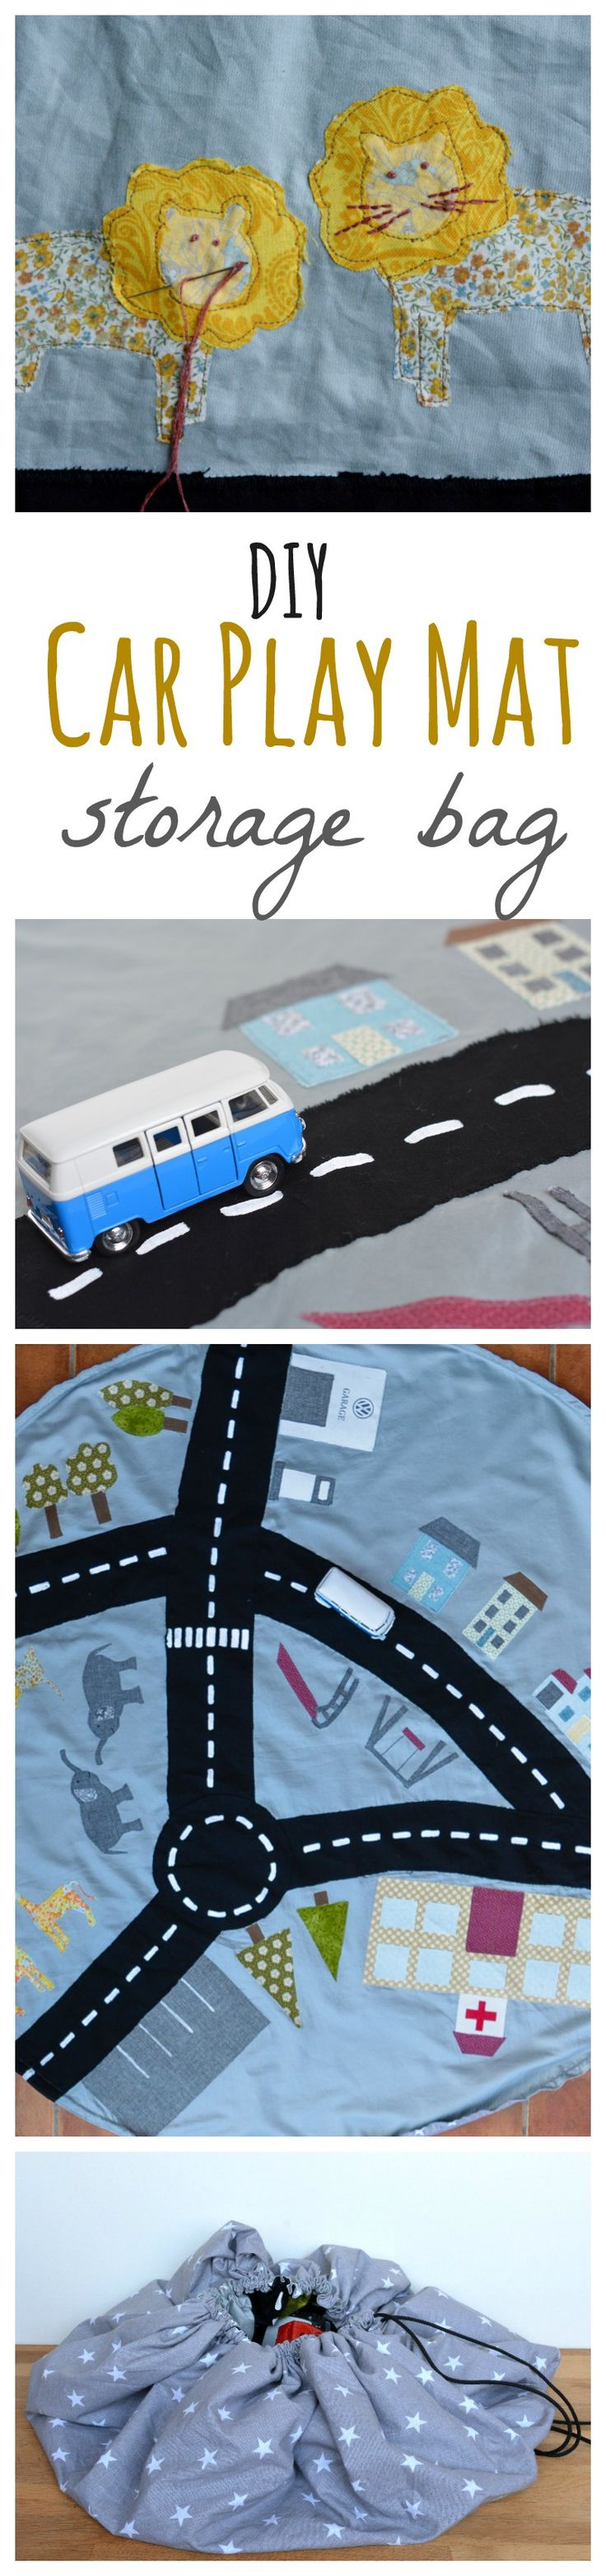 "Create a fun car play mat, doubles as storage bag - full tutorial on the blog with free downloadable templates. Volkswagen, vickymyerscreations and many other bloggers share even more inspiration in the ""DIY Bloggers for Volkswagen""-board: https://uk.pinterest.com/volkswagen/diy-bloggers-for-volkswagen/"